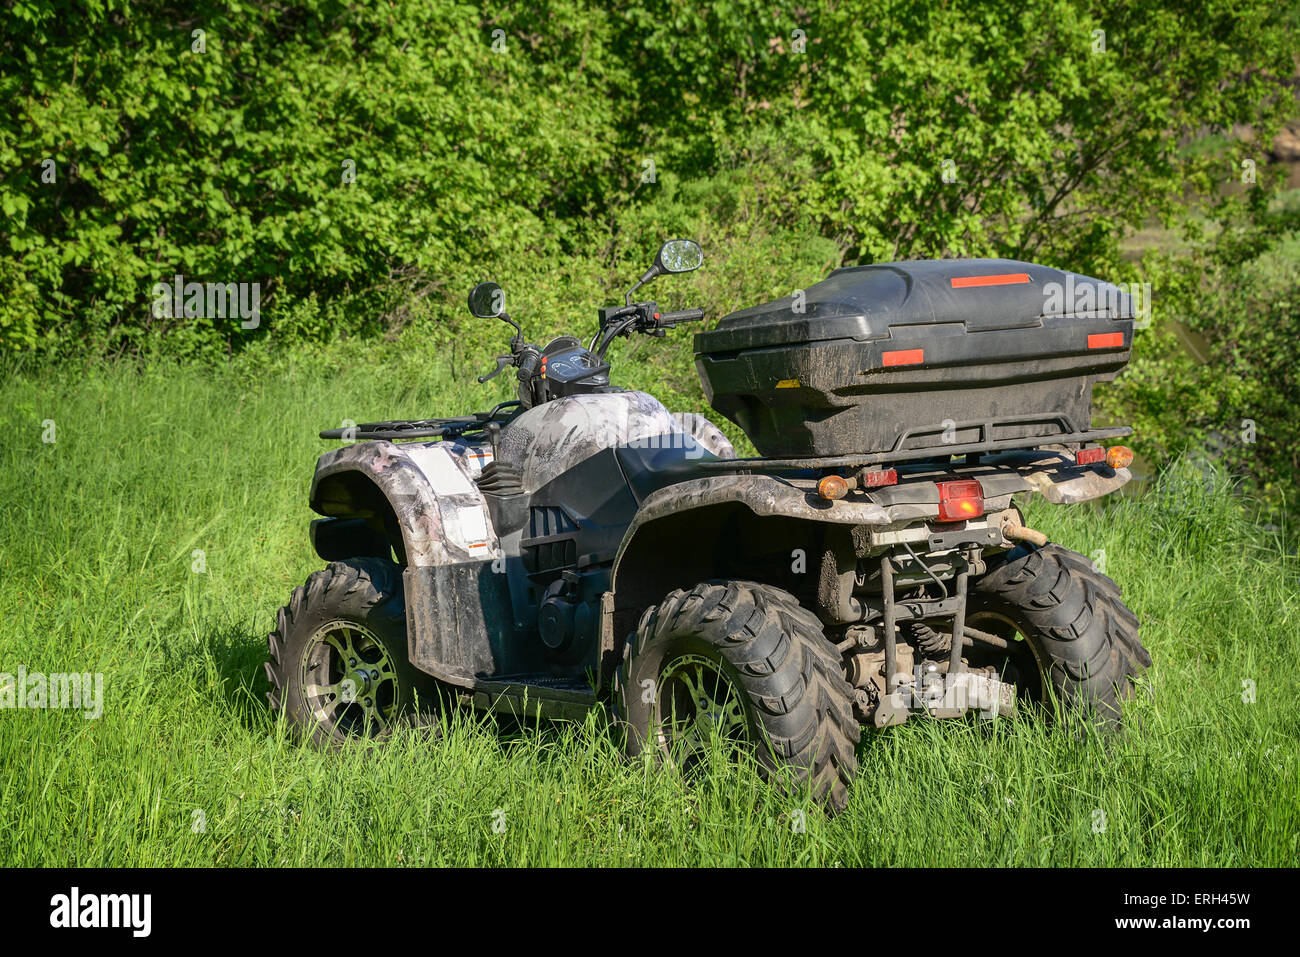 4x4 ATV in the forest at sunny day - Stock Image